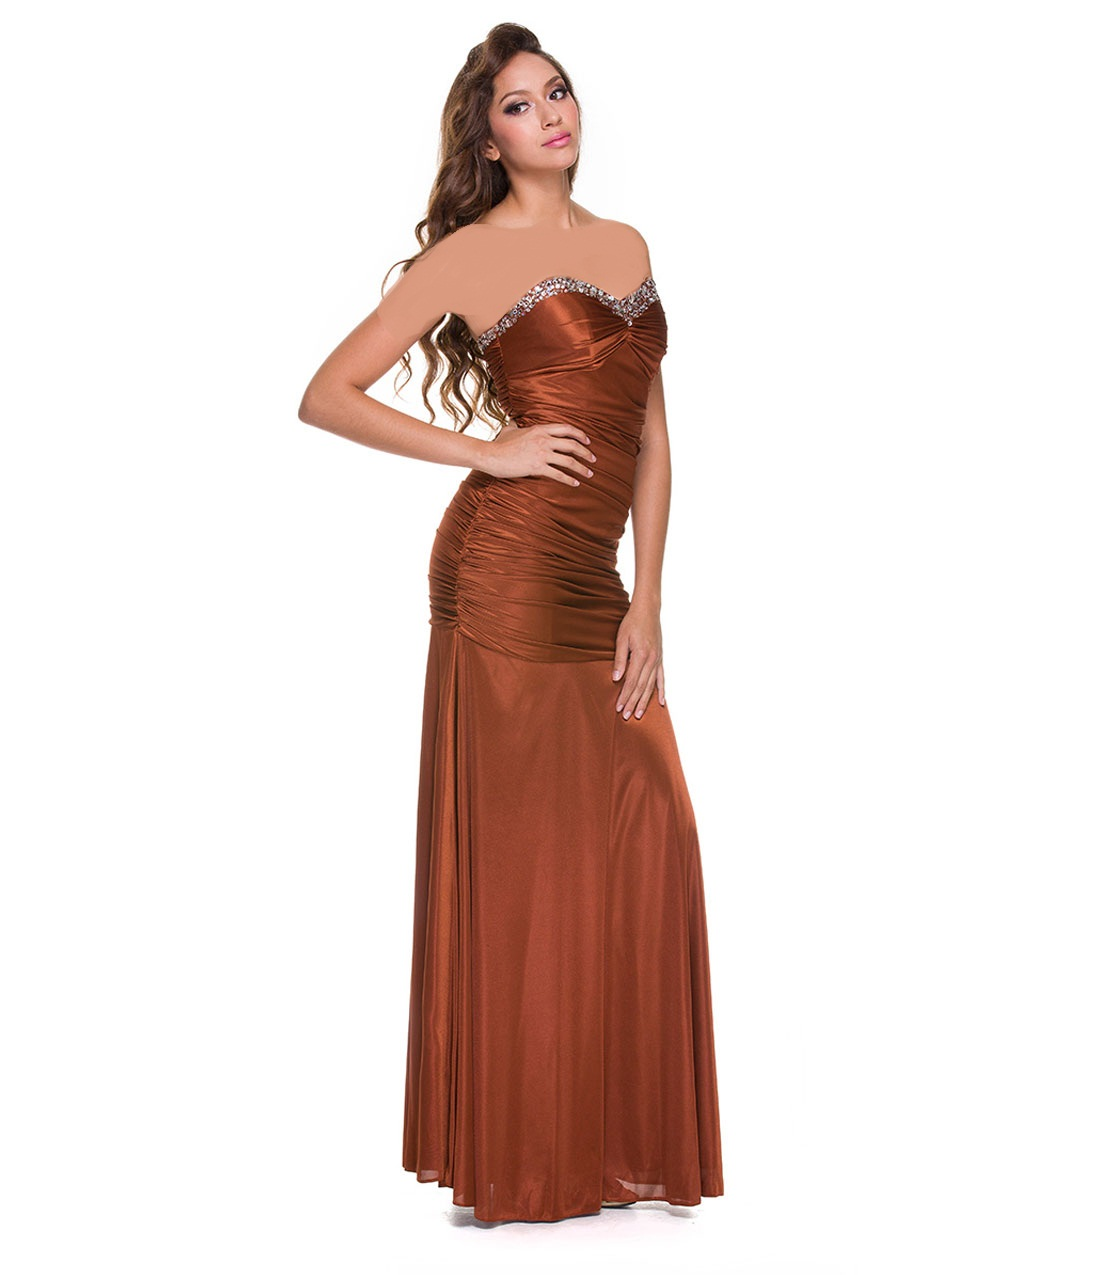 http://www.uplooder.net/img/image/82/939bad6b3d79cdd97256123058301424/light-brown-strapless-mermaid-prom-gown-39528larger.jpg